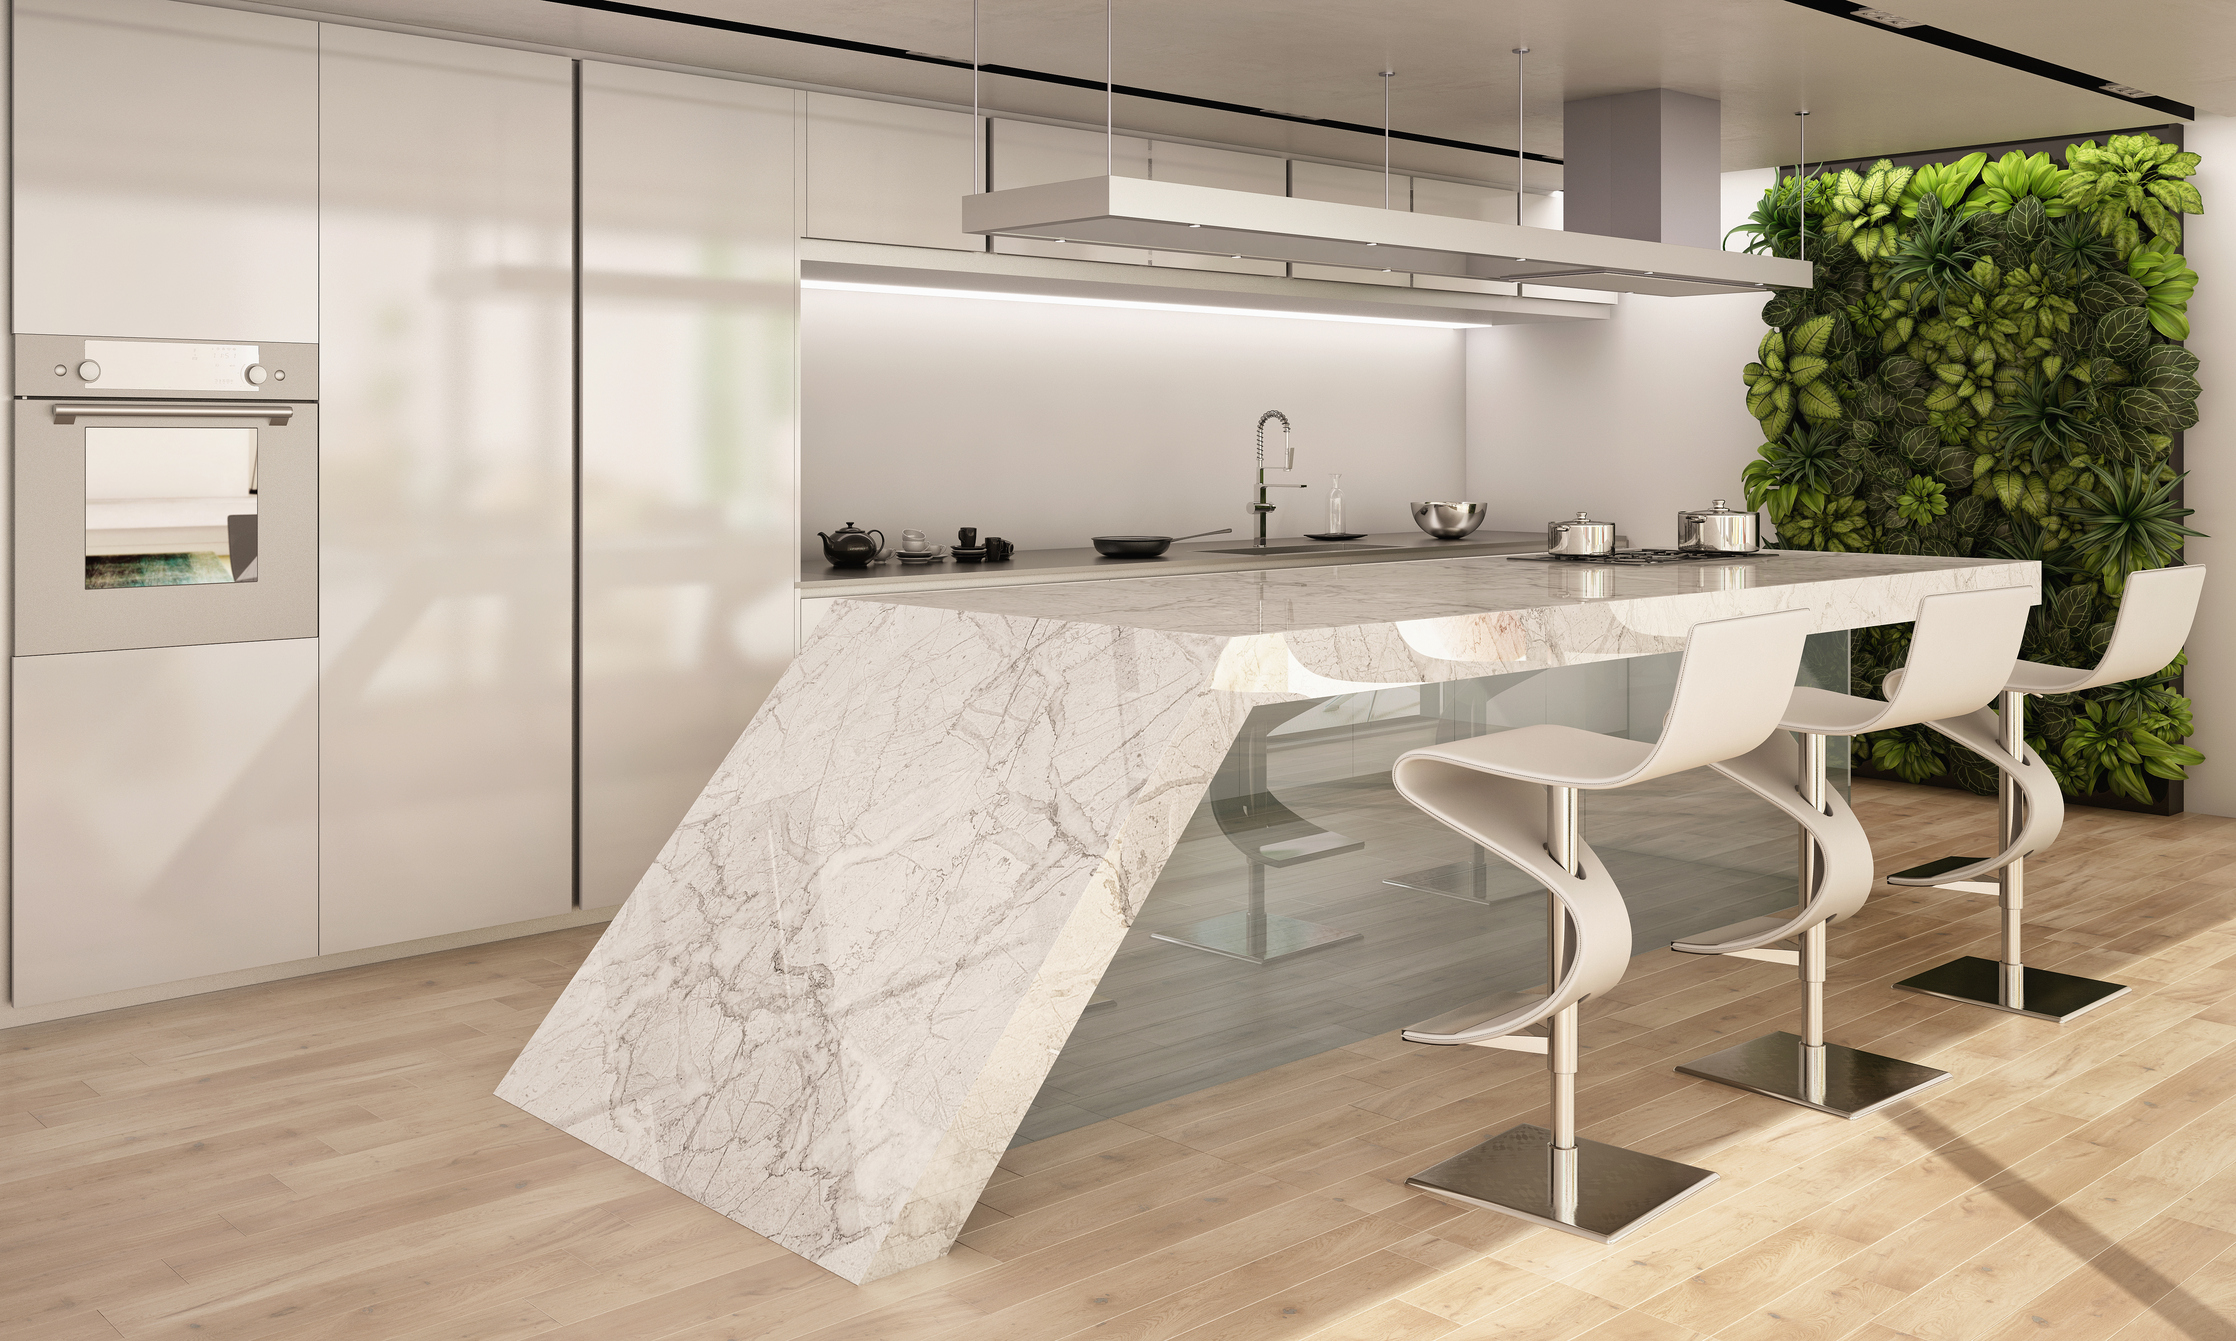 Making Use of Great Kitchen Worktops